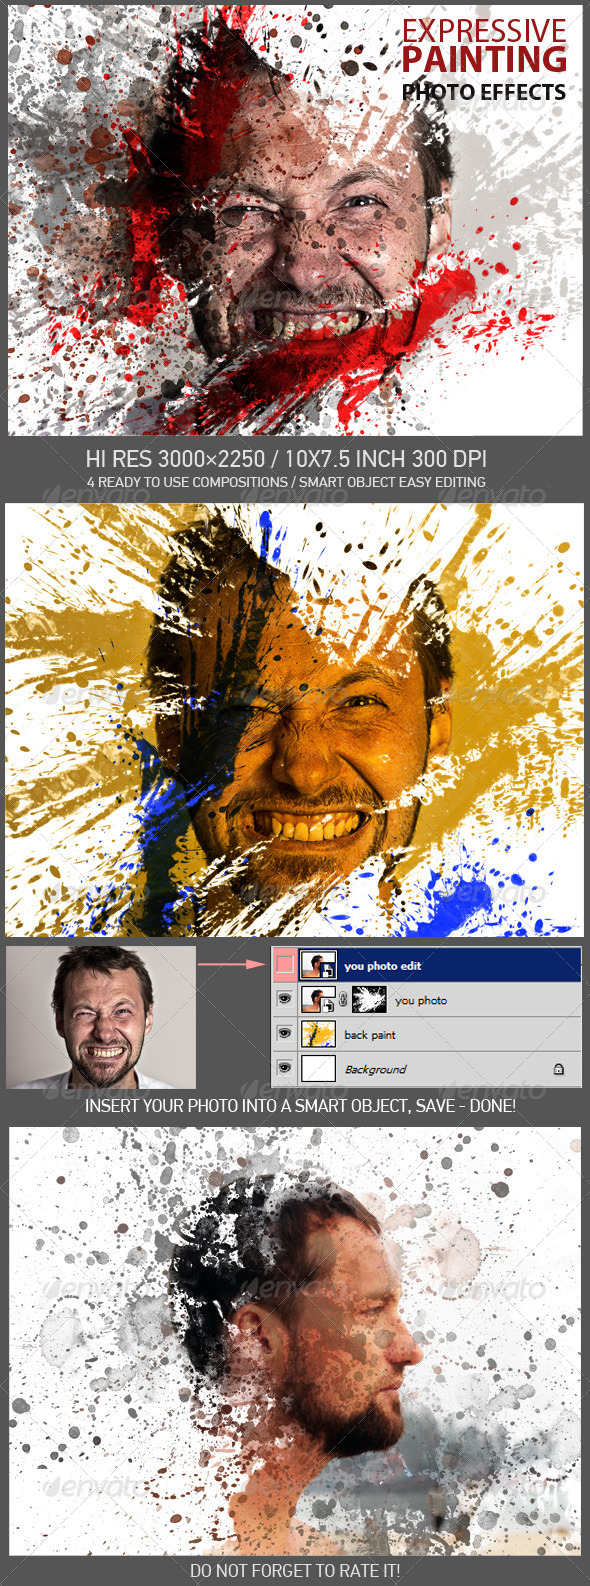 GraphicRiver Expressive Painting Photo Effects 8082426